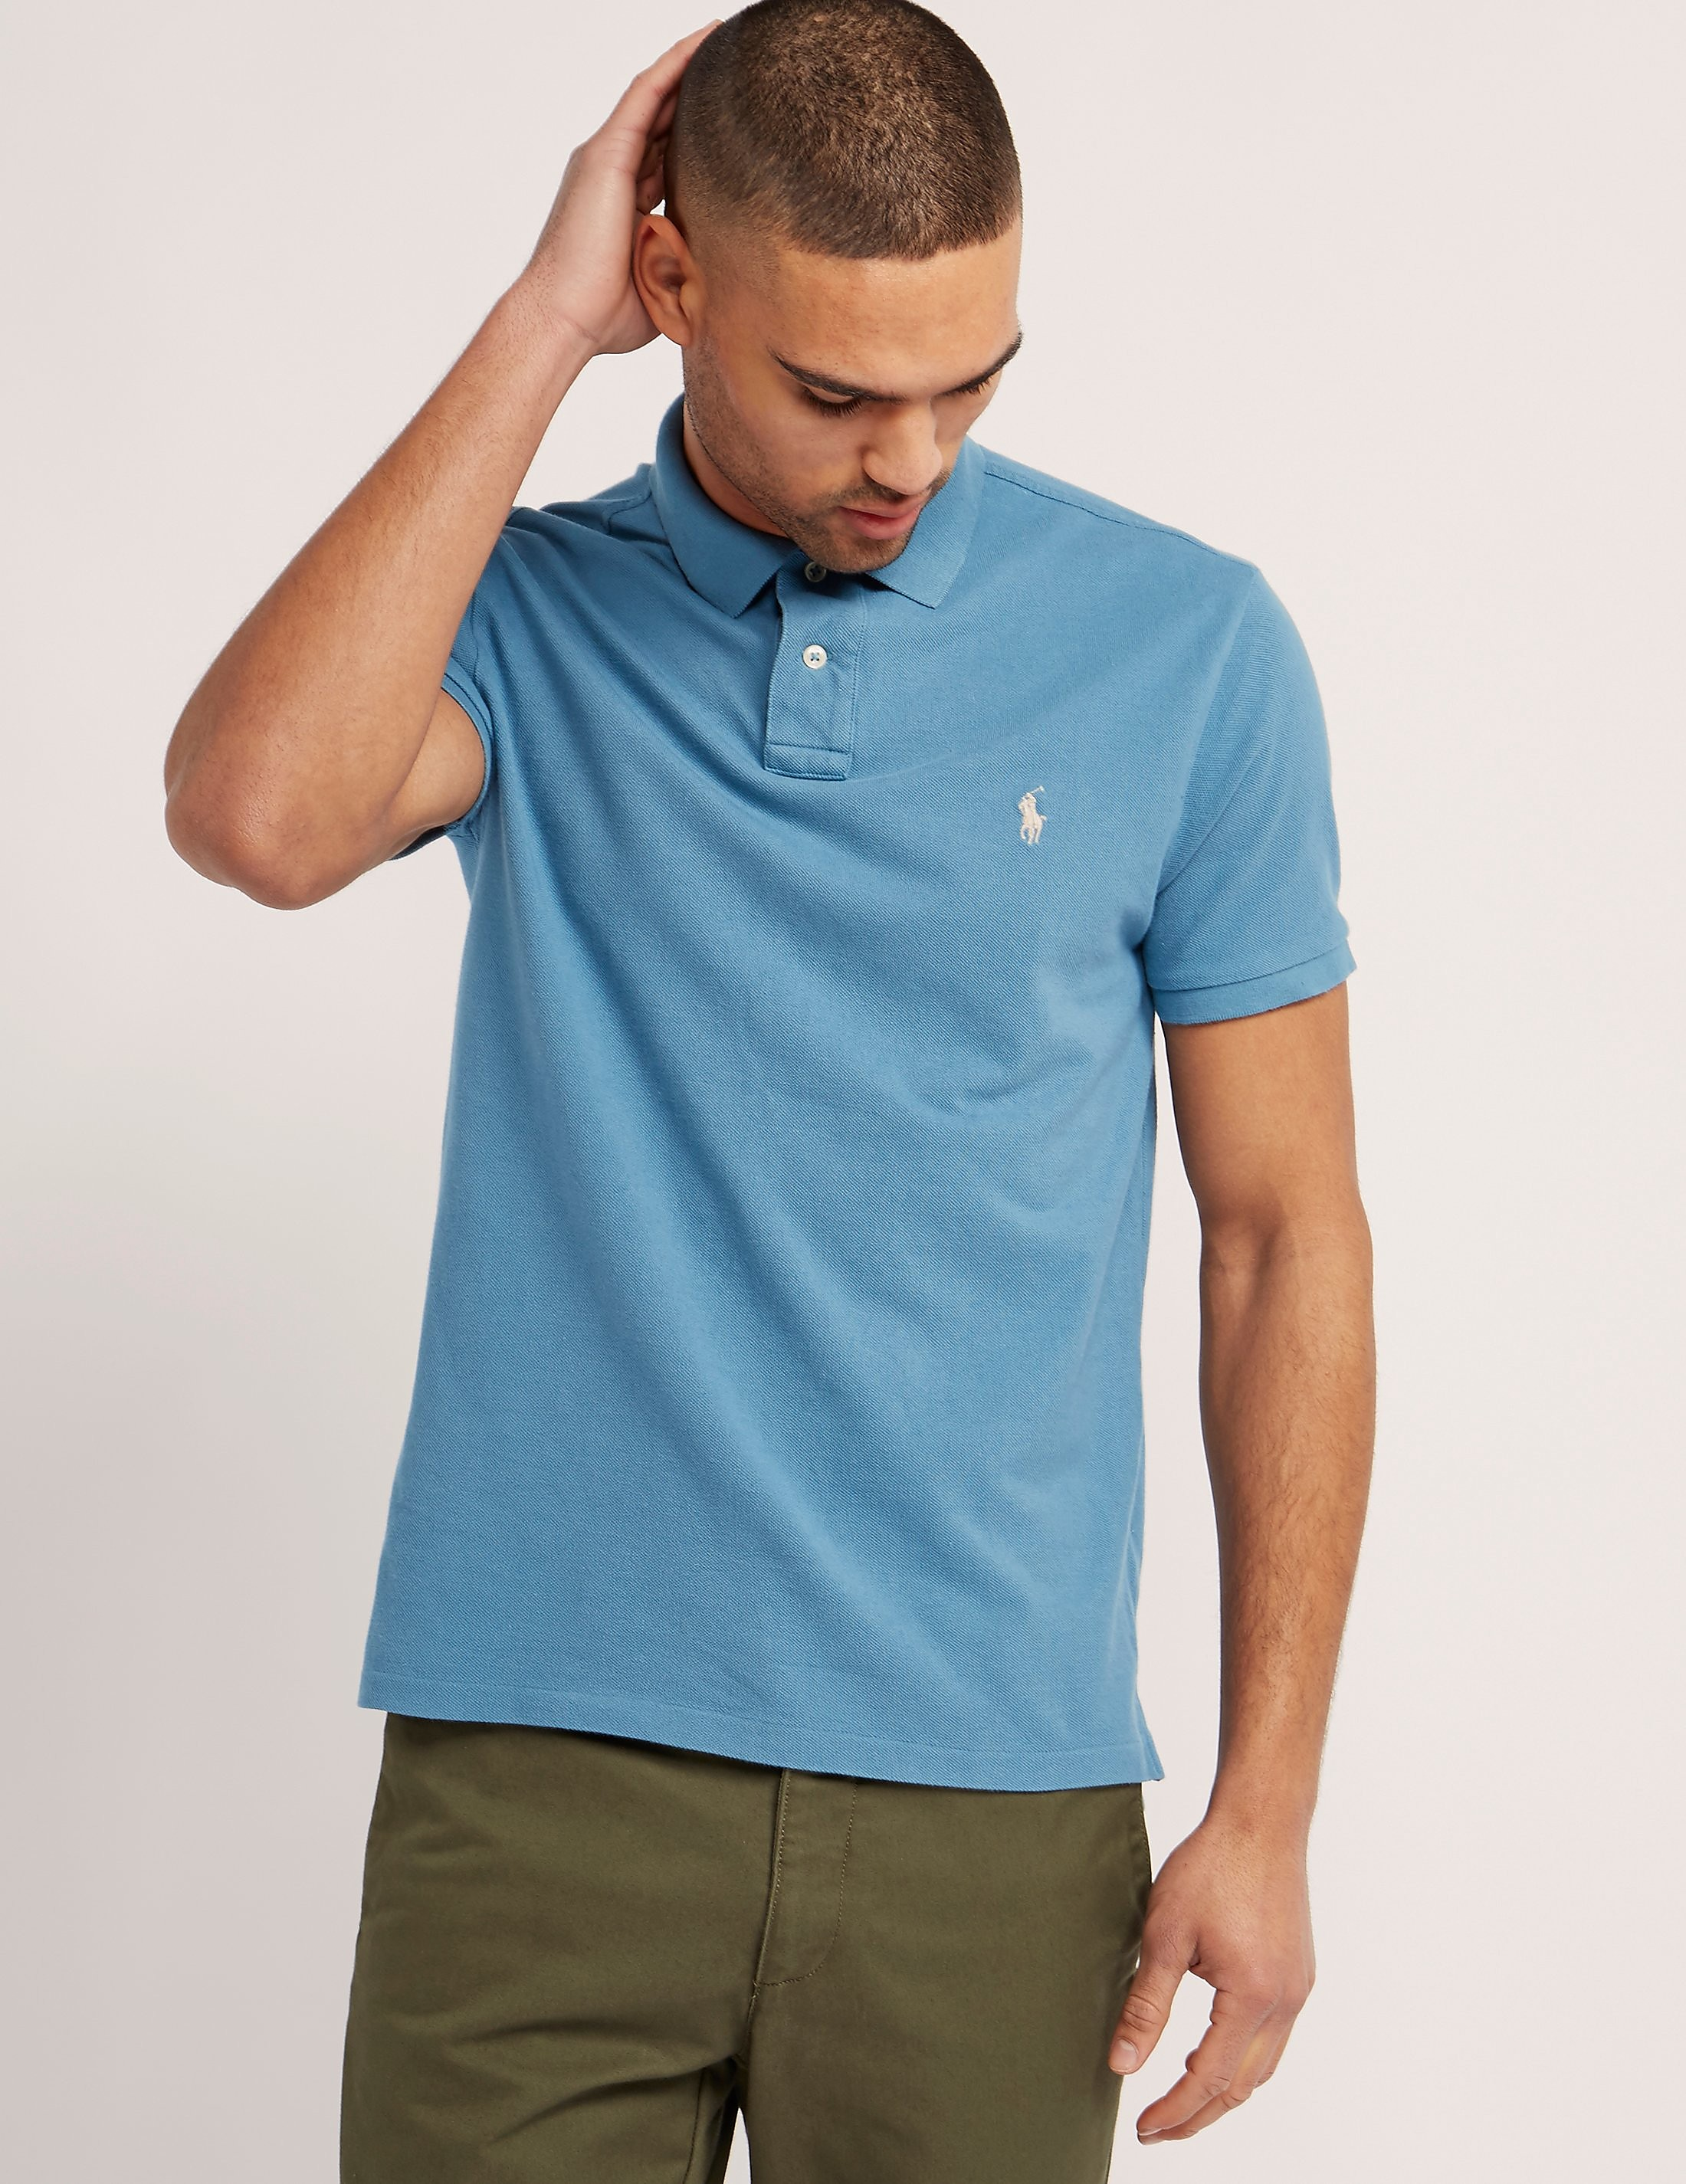 Polo Ralph Lauren Weathered Mesh Polo Shirt